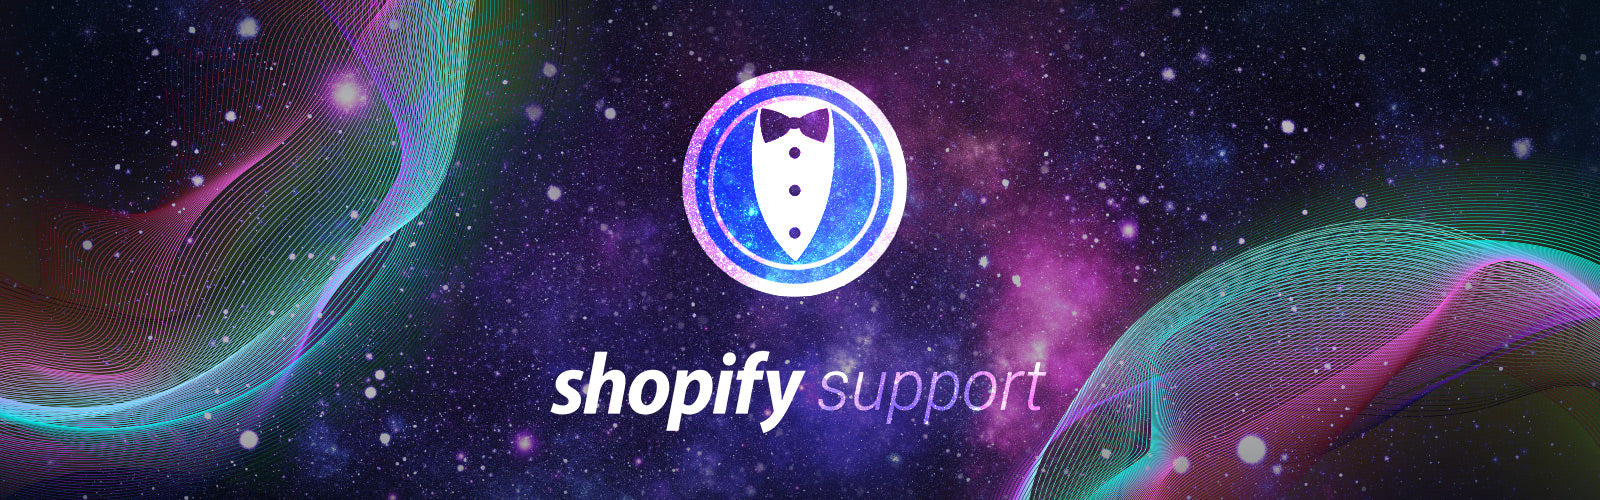 Shopify Support Services